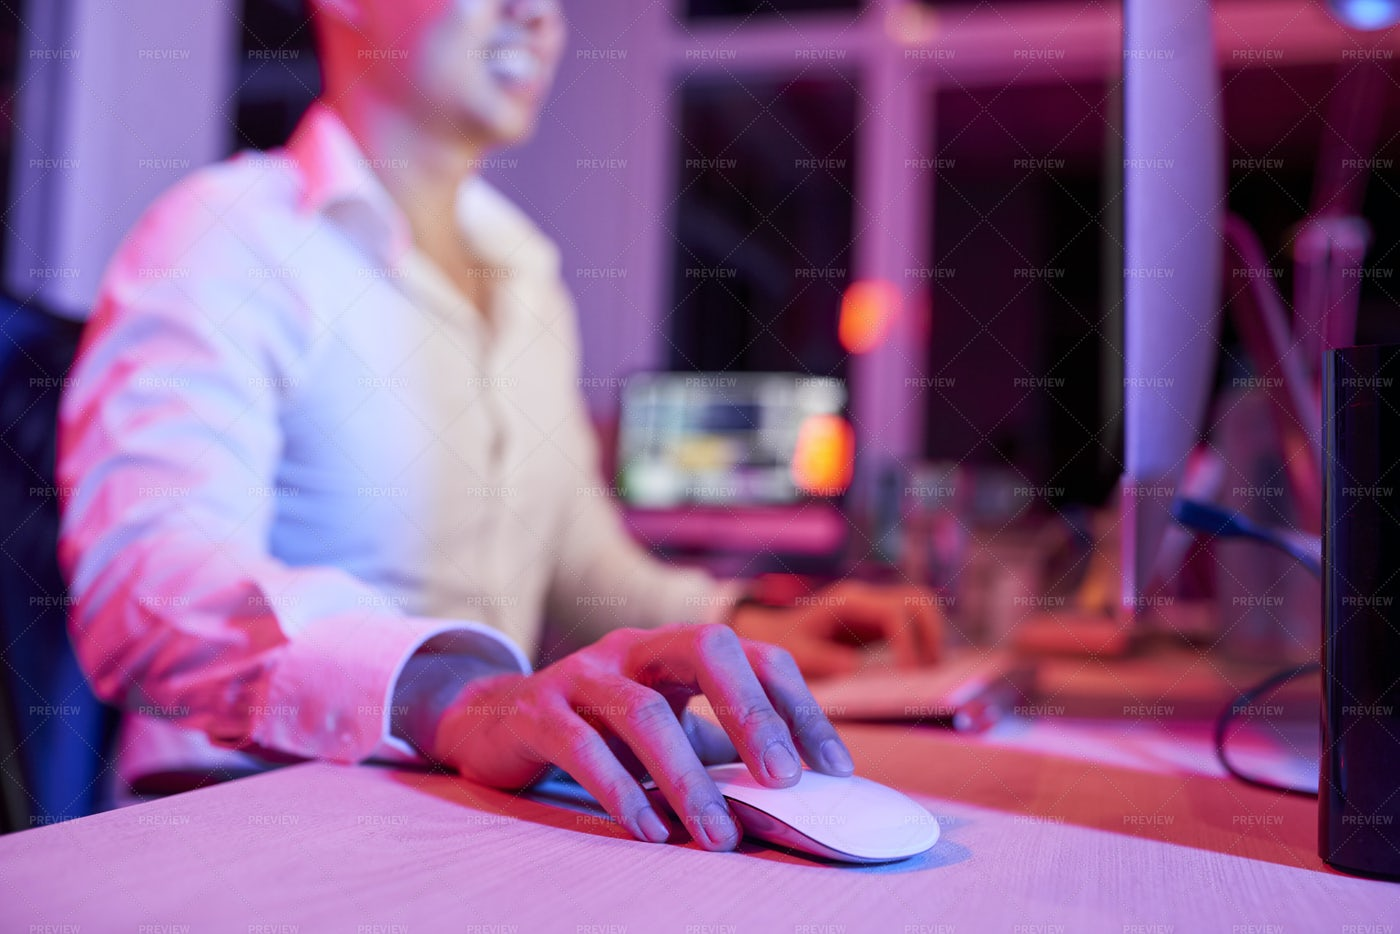 Manager Working On Computer At Office: Stock Photos